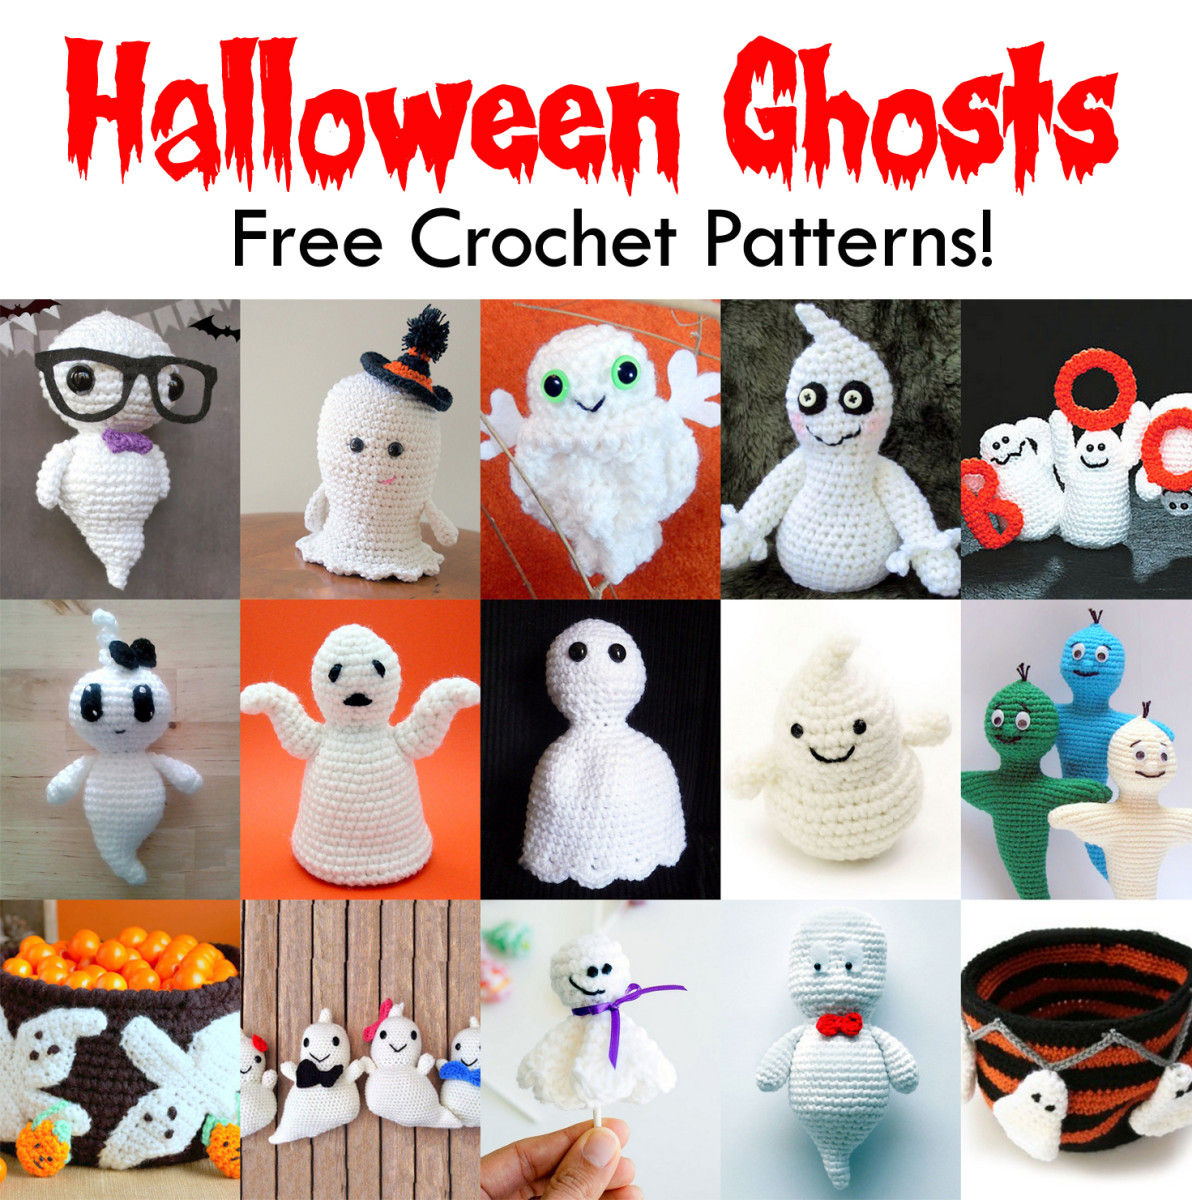 Free Halloween Ghost Crochet Patterns